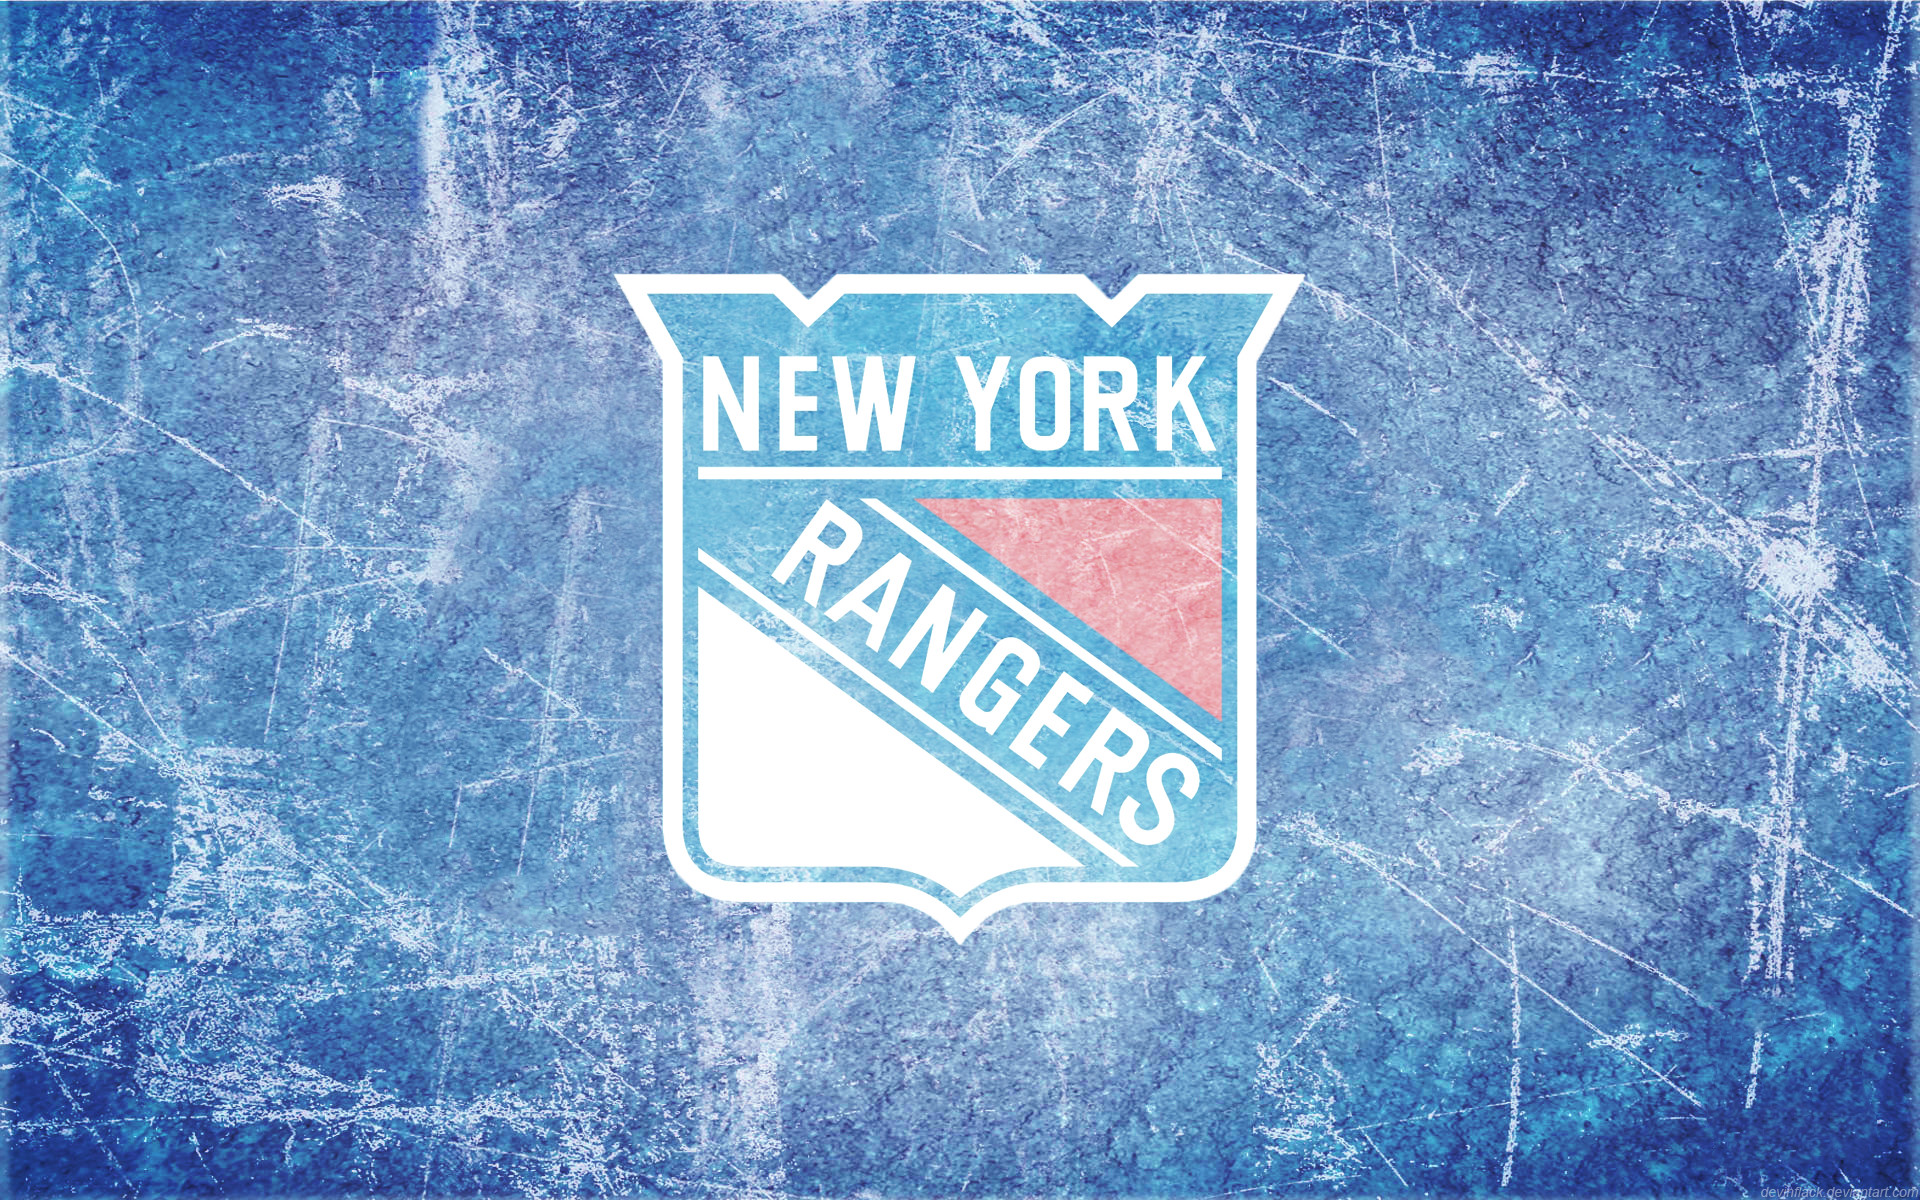 New York Rangers Wallpaper Iphone 6 New York Rangers Iphone Wallpaper 63 Images